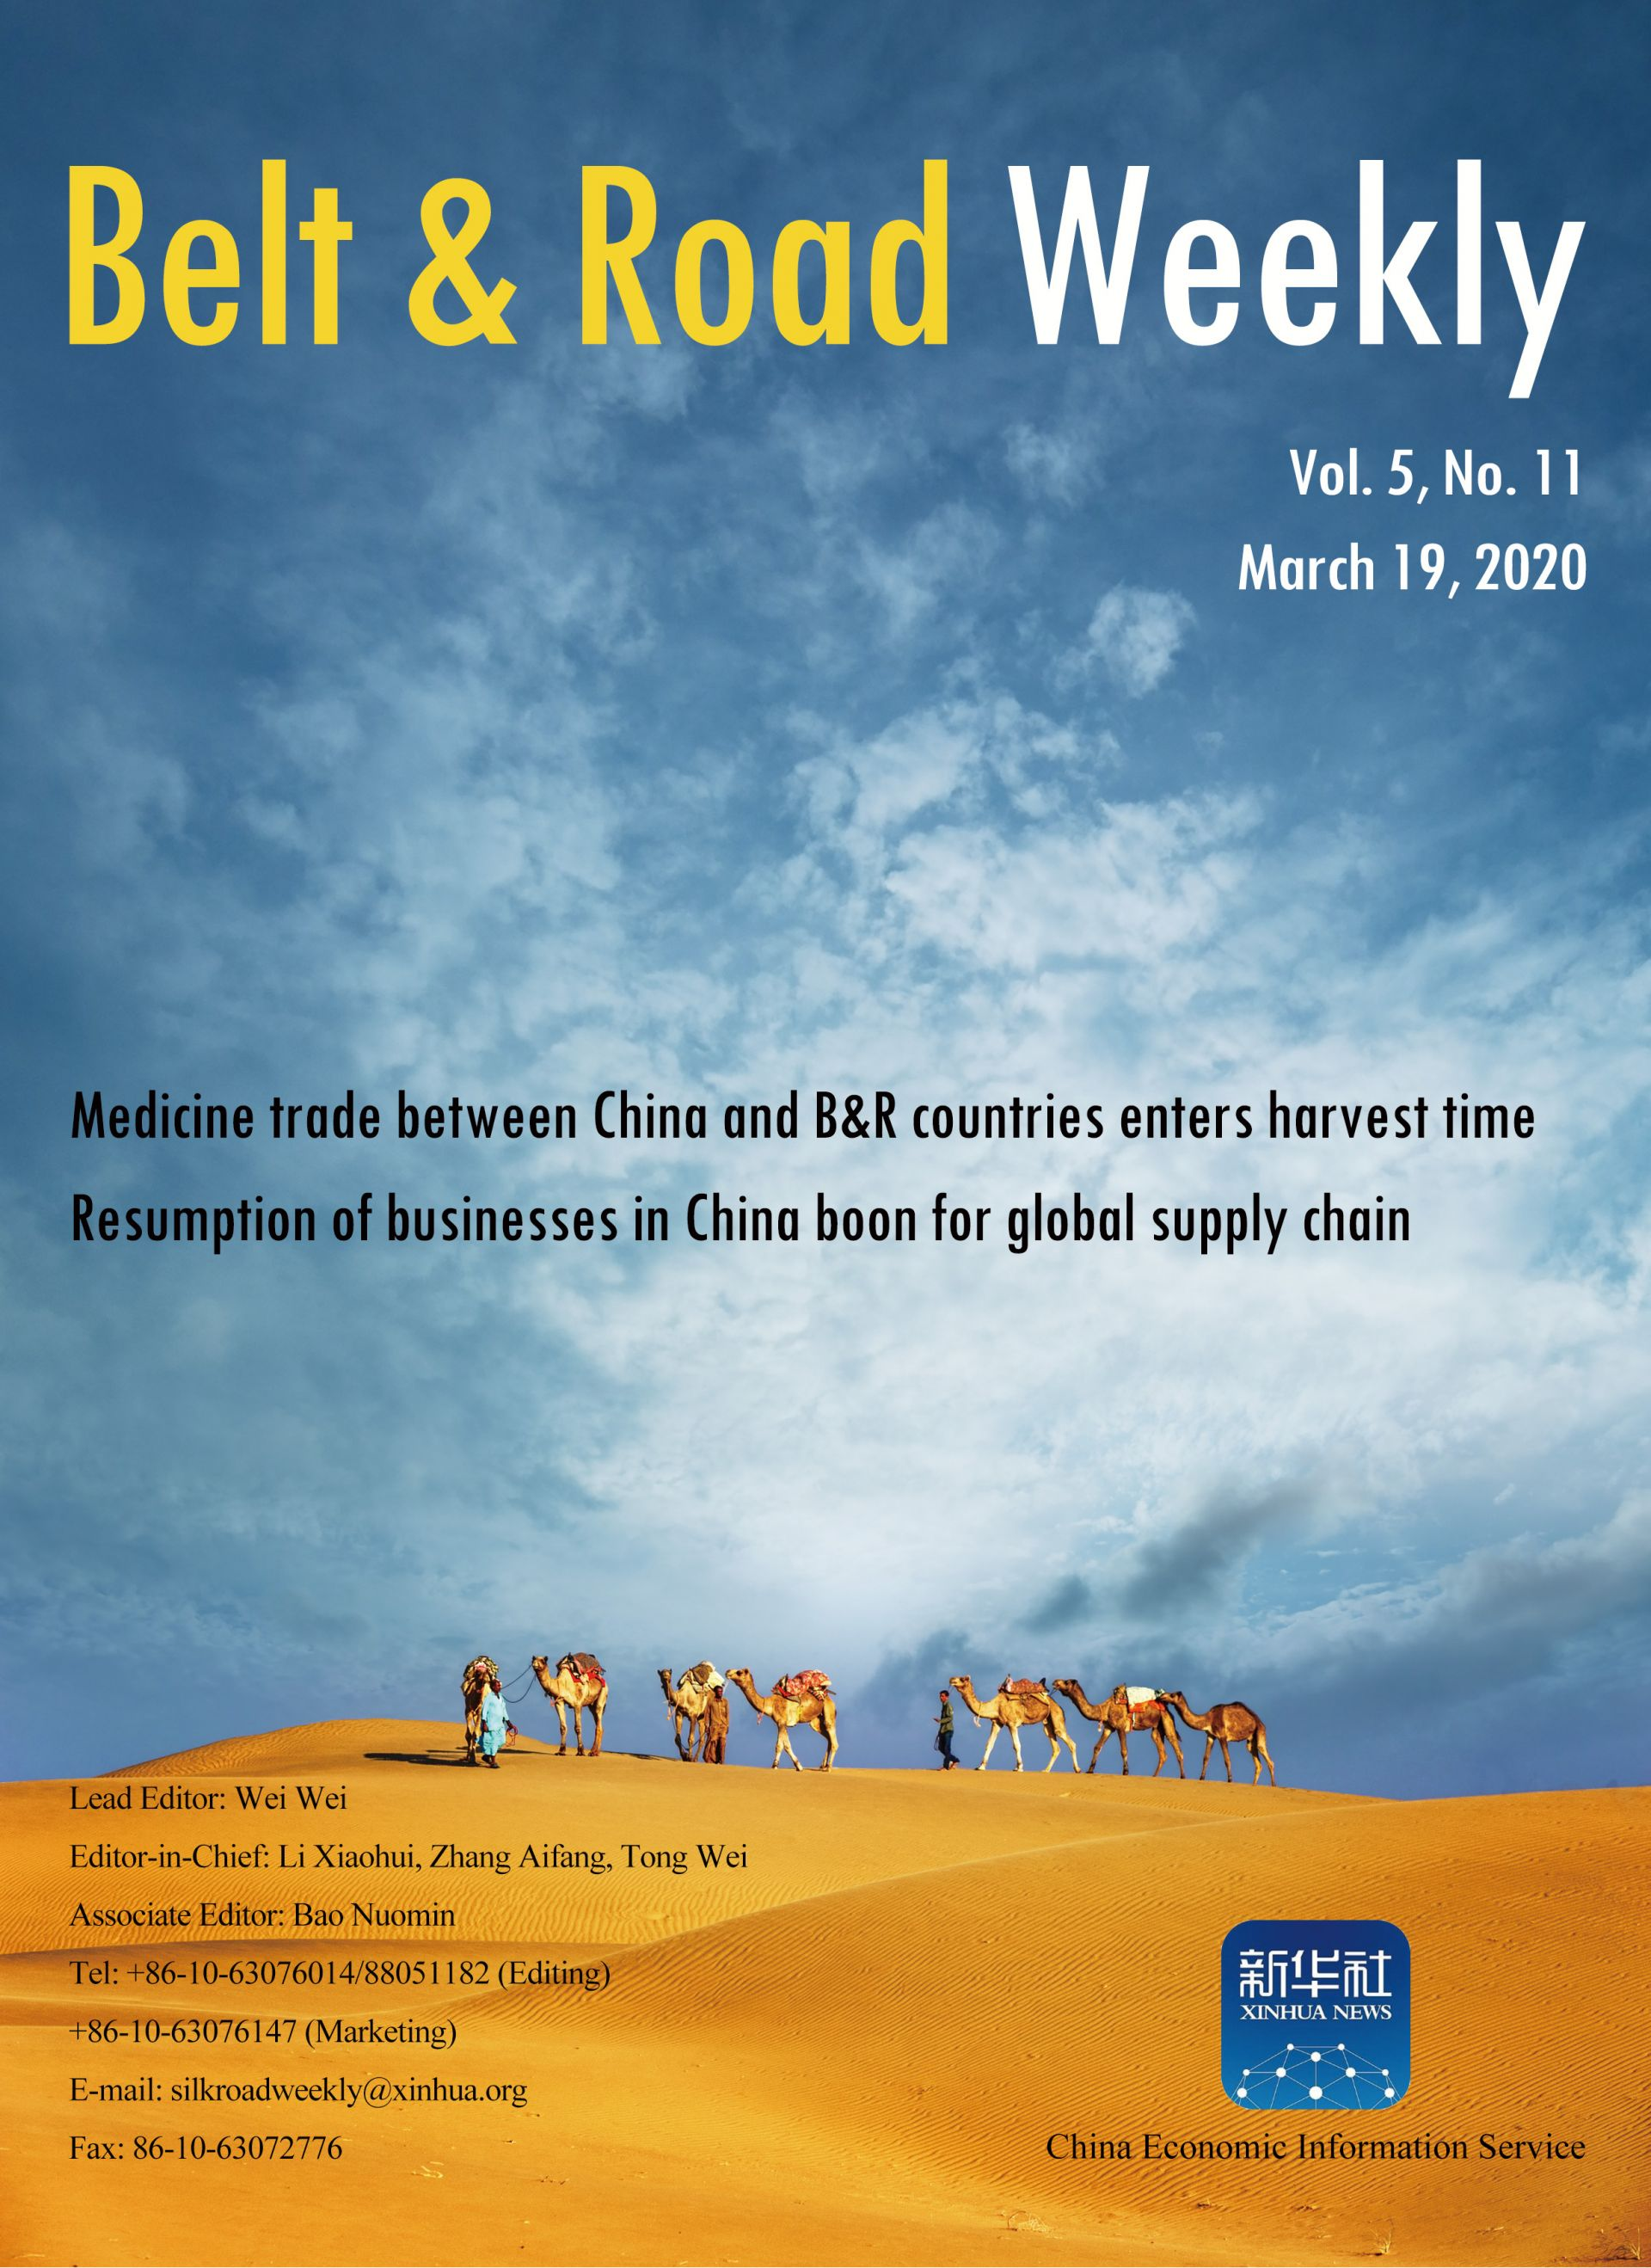 Belt & Road Weekly Vol.5 No. 11